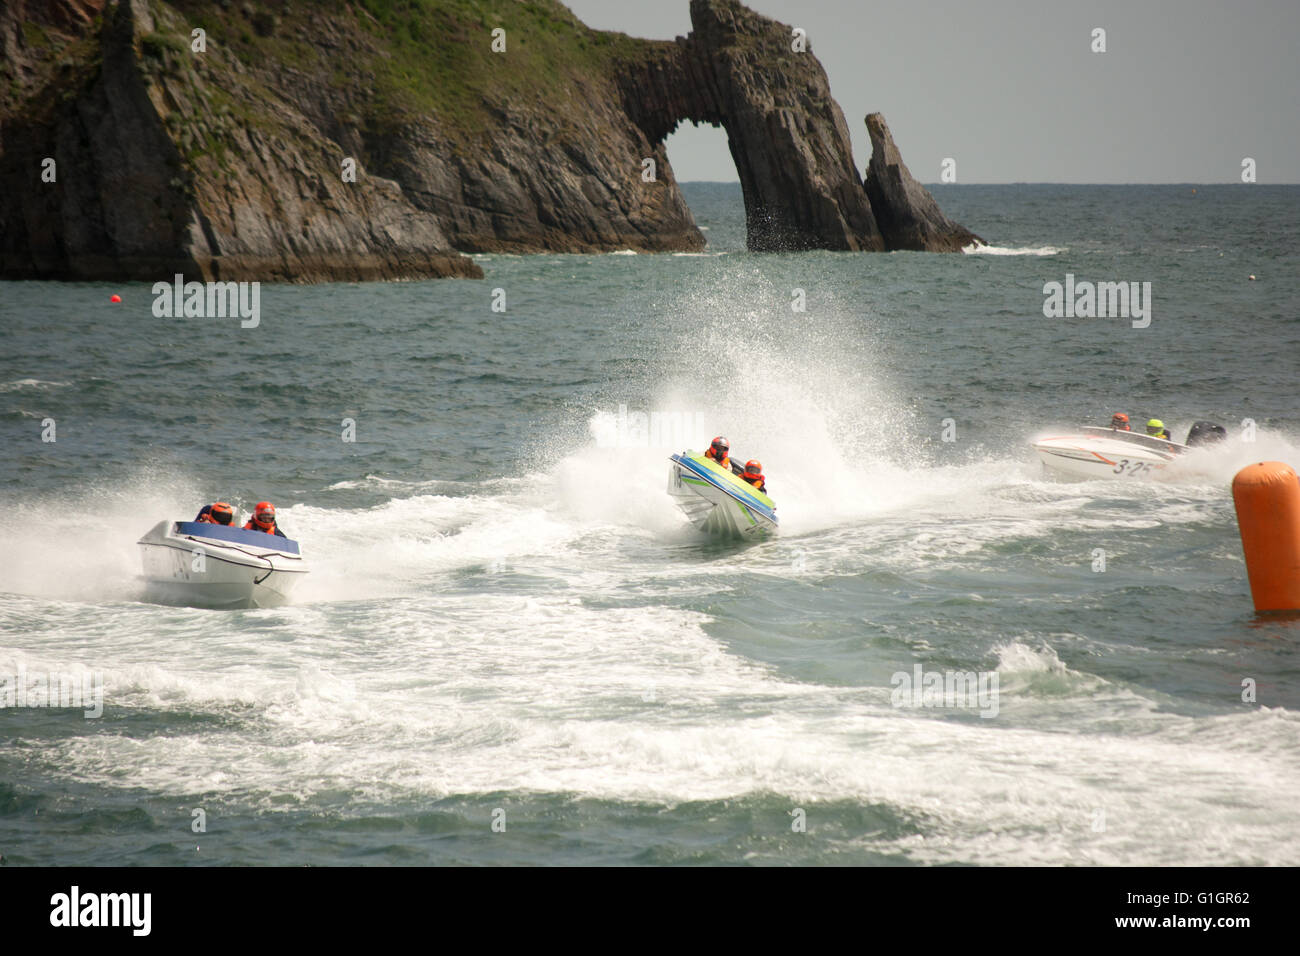 Powerboat racing around Torbay by the Offshore Circuit Racing Drivers Association at Torquay, Devon, UK, May 2016. - Stock Image